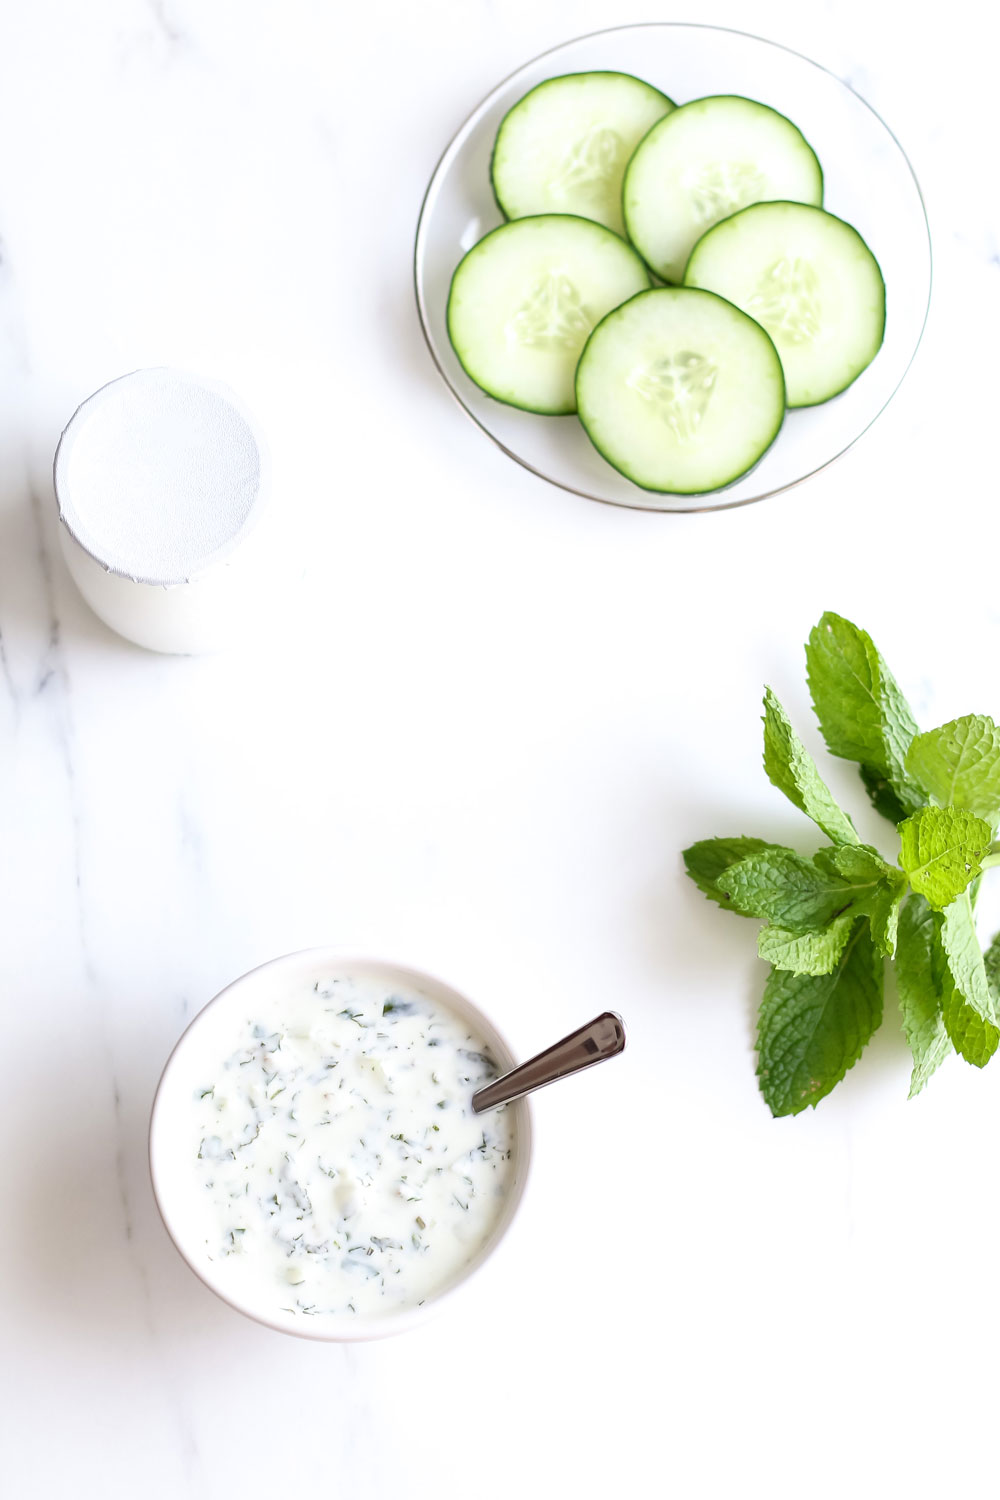 Creamy Kefir Salad Dressing Recipe: Deliciously creamy cucumber mint dressing to add the perfect probiotic boost to your salads! https://www.spotebi.com/recipes/creamy-kefir-salad-dressing/